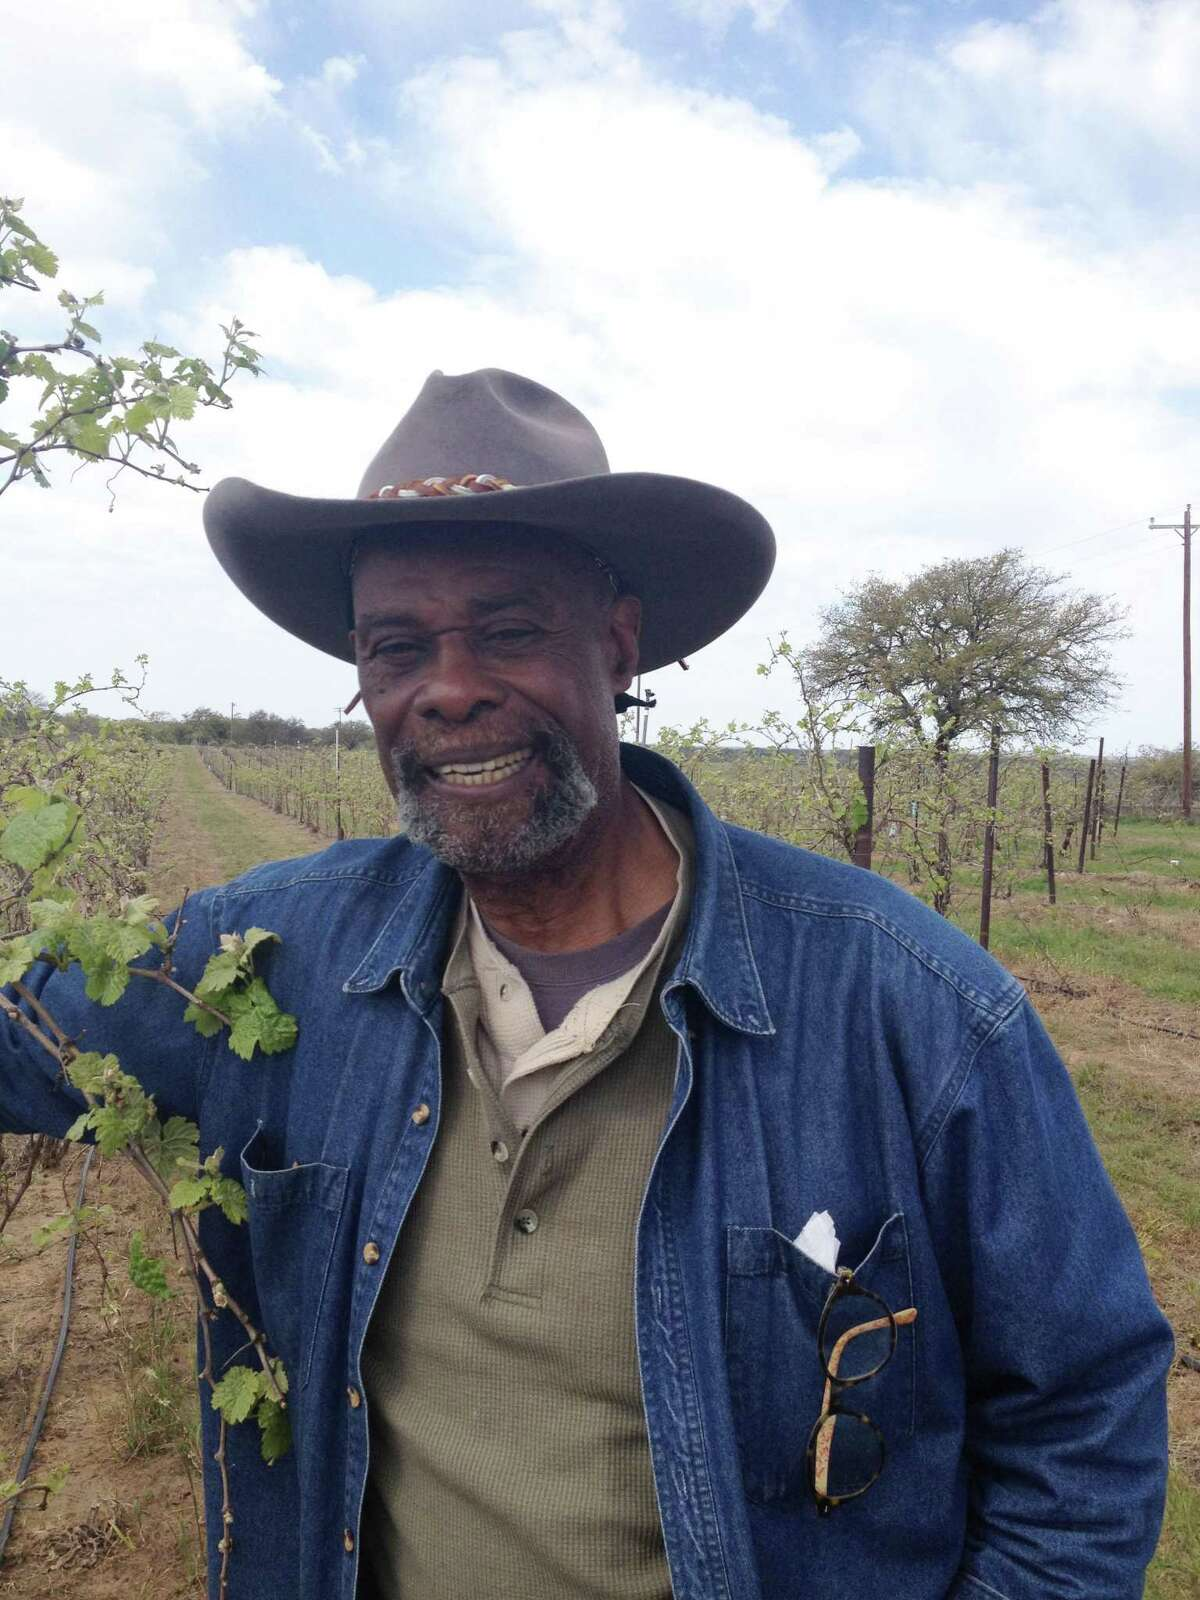 Former pro football player Alphonse Dotson grows grapes and makes award-winning wines on his spread near Pontotoc. A Mason County resident, he's either a West Texan or a Central Texan.